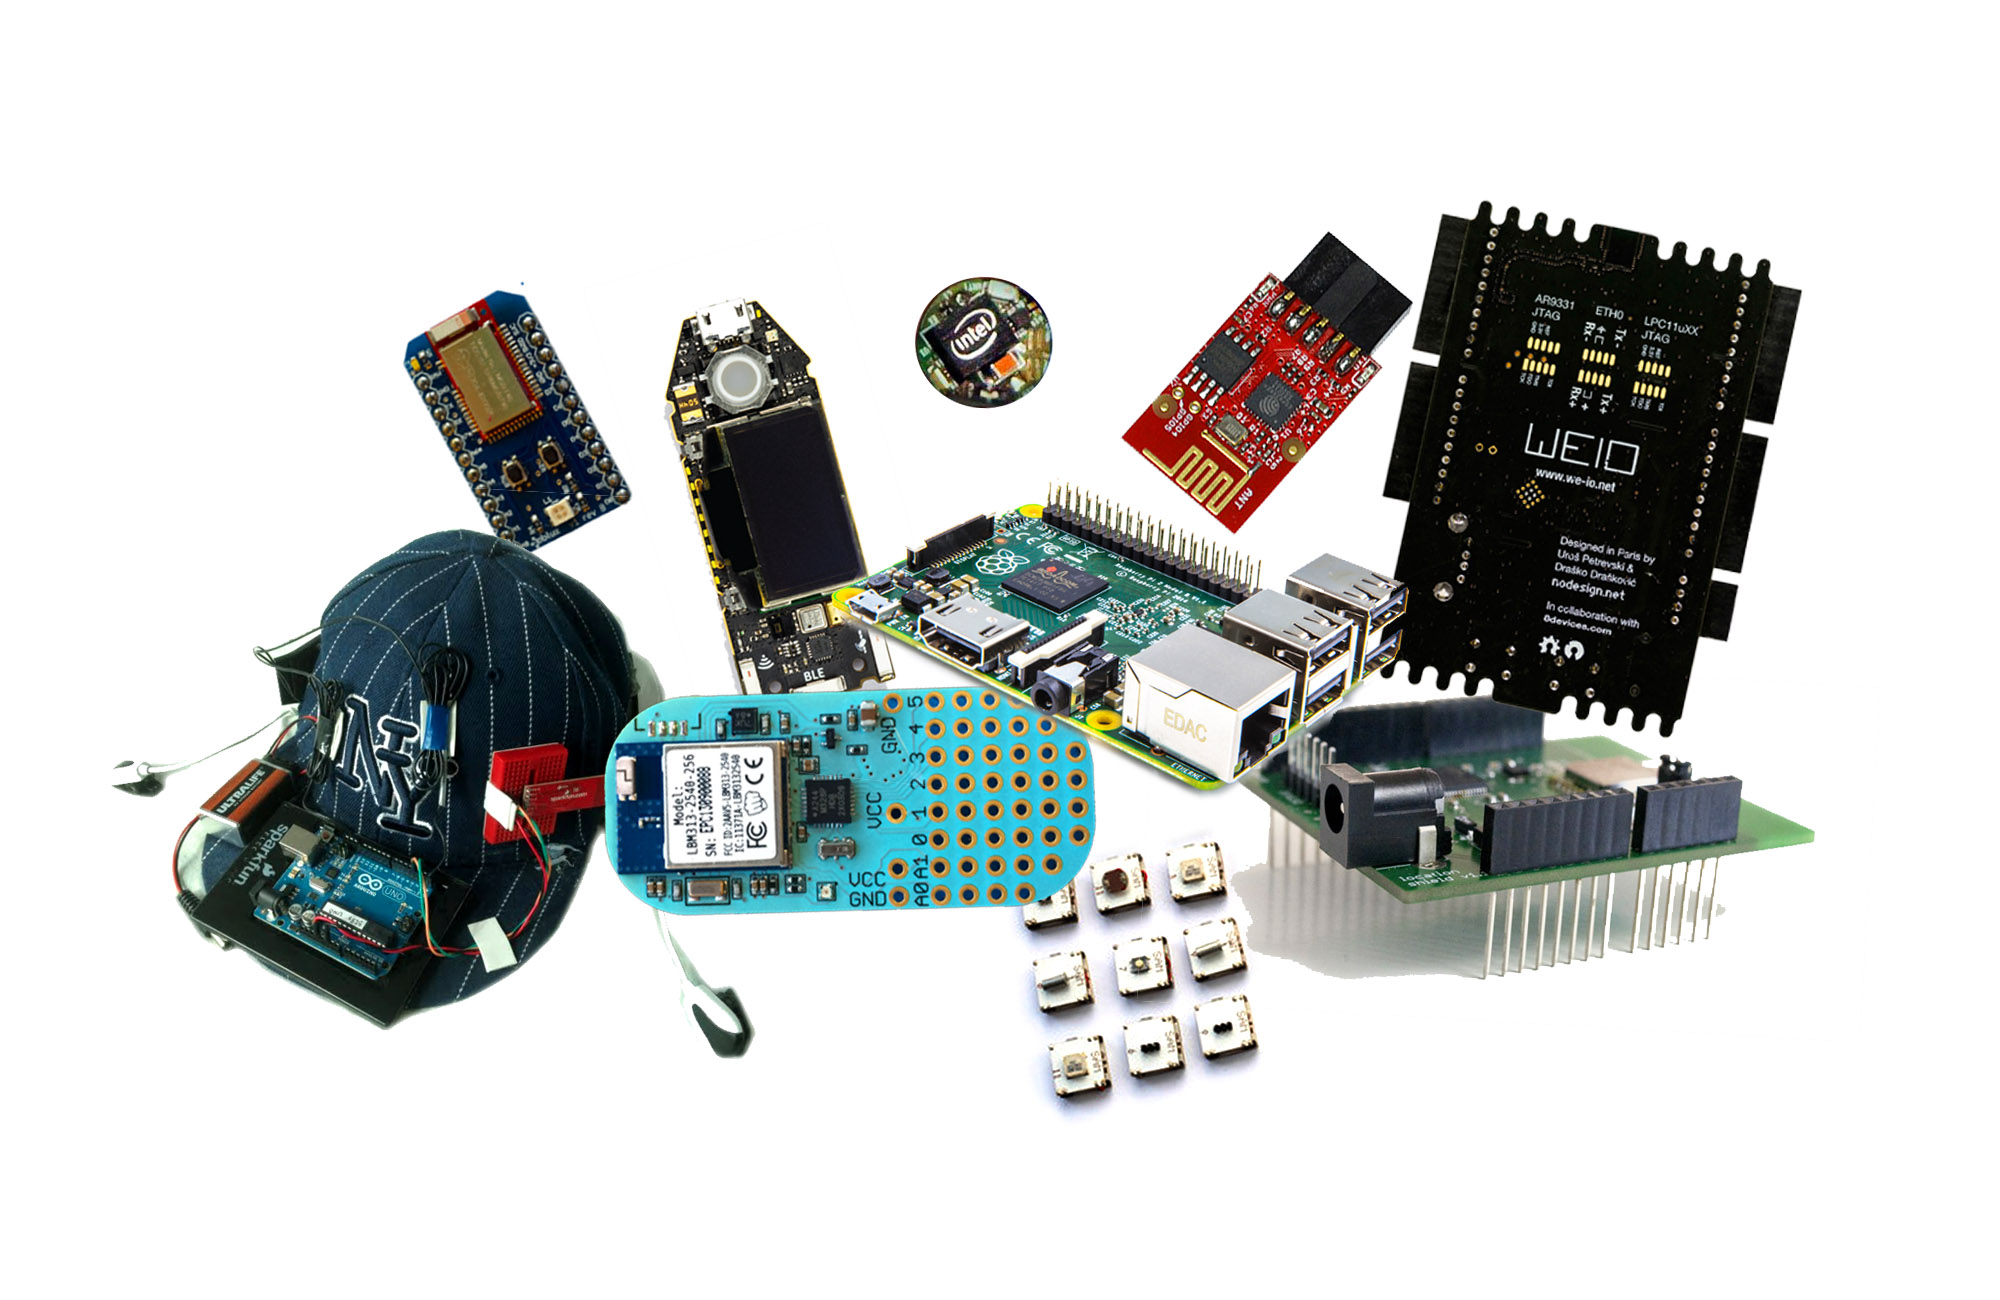 Top 10 kits for hardware prototyping